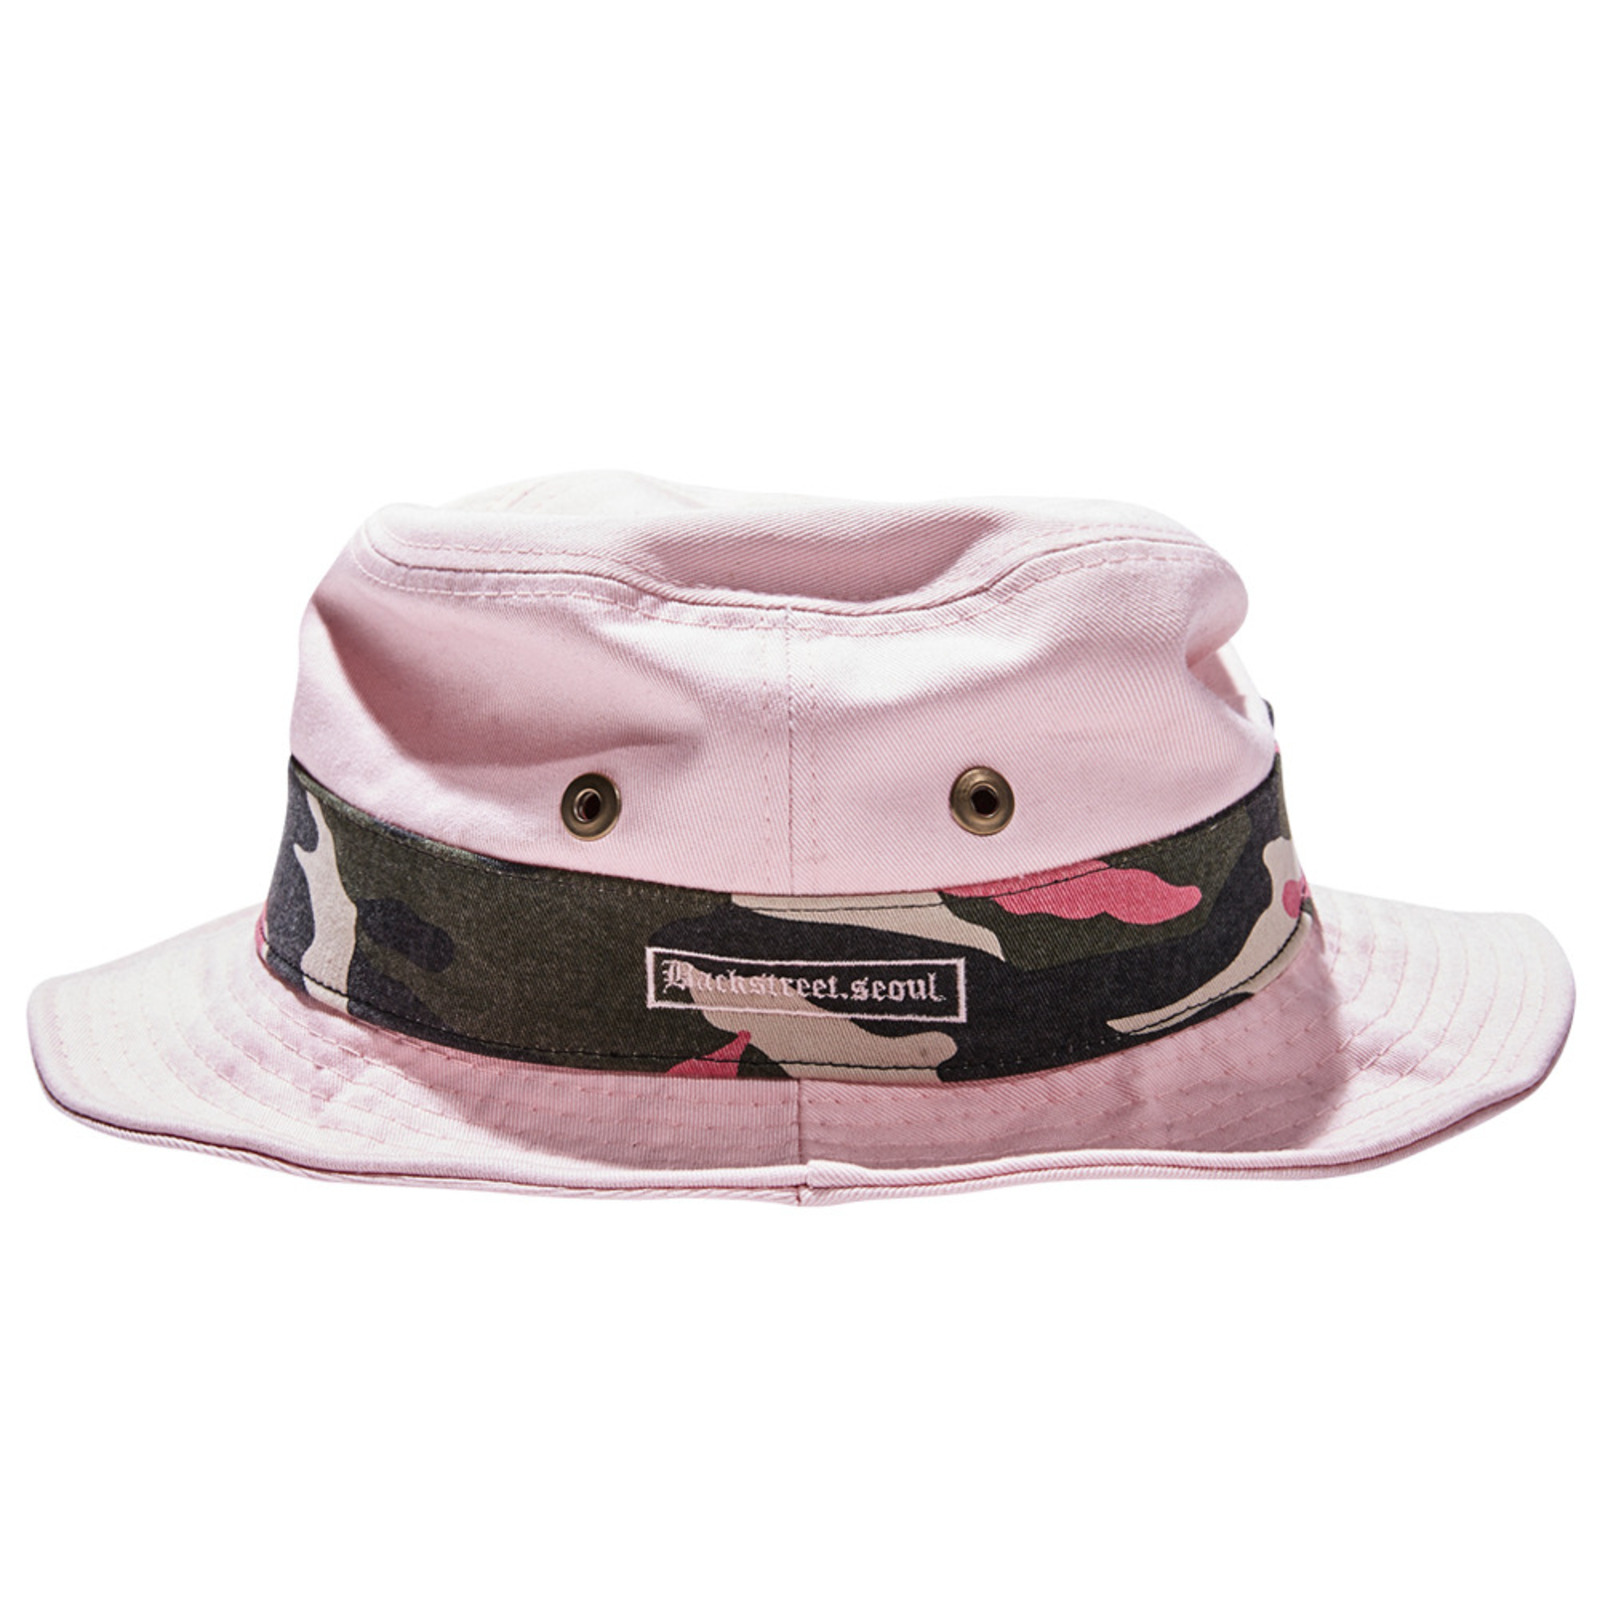 BS.invincible bucket hat PINK